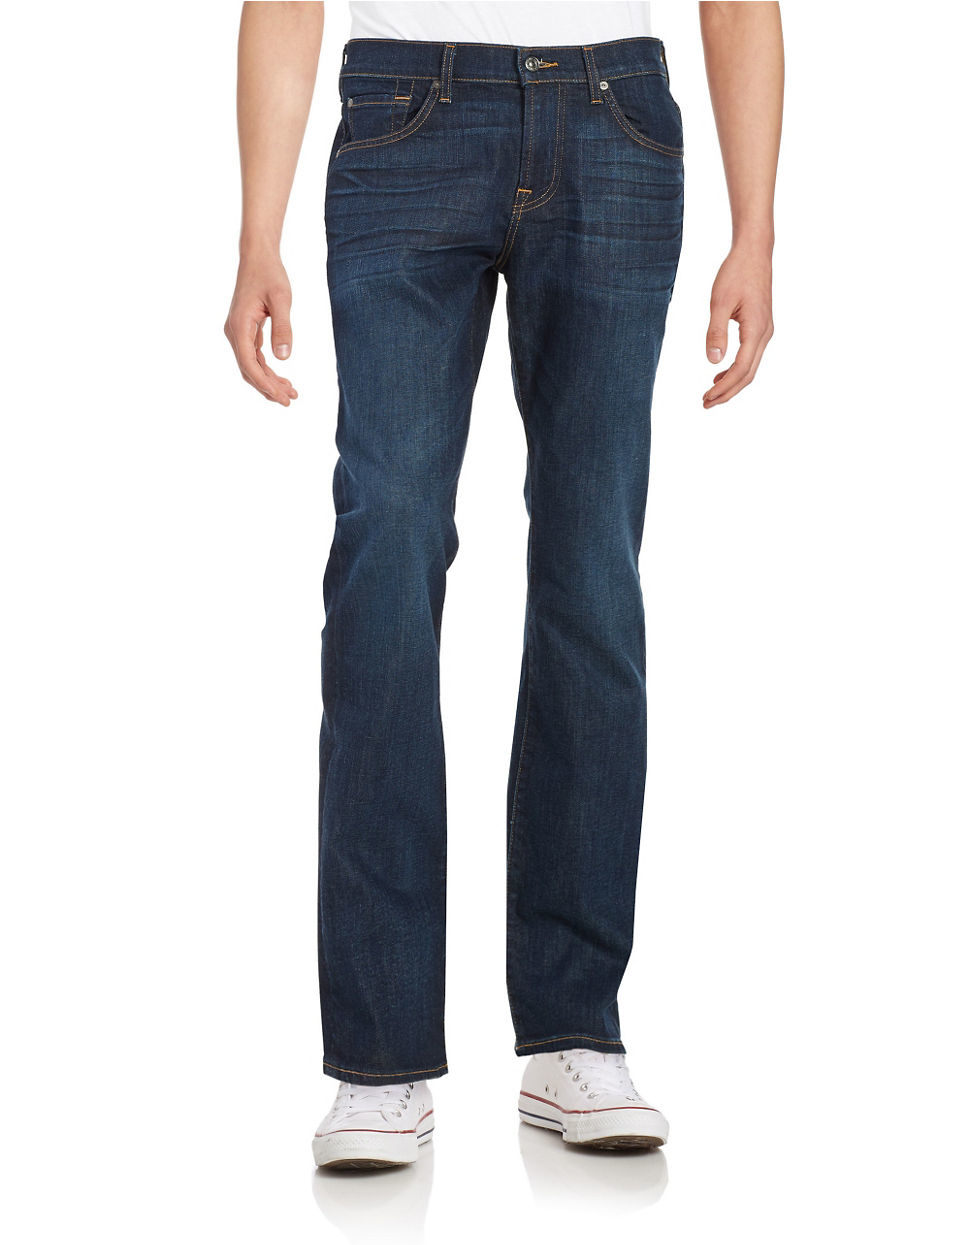 for all mankind austyn relaxed straight jeans in blue for men lyst. Black Bedroom Furniture Sets. Home Design Ideas